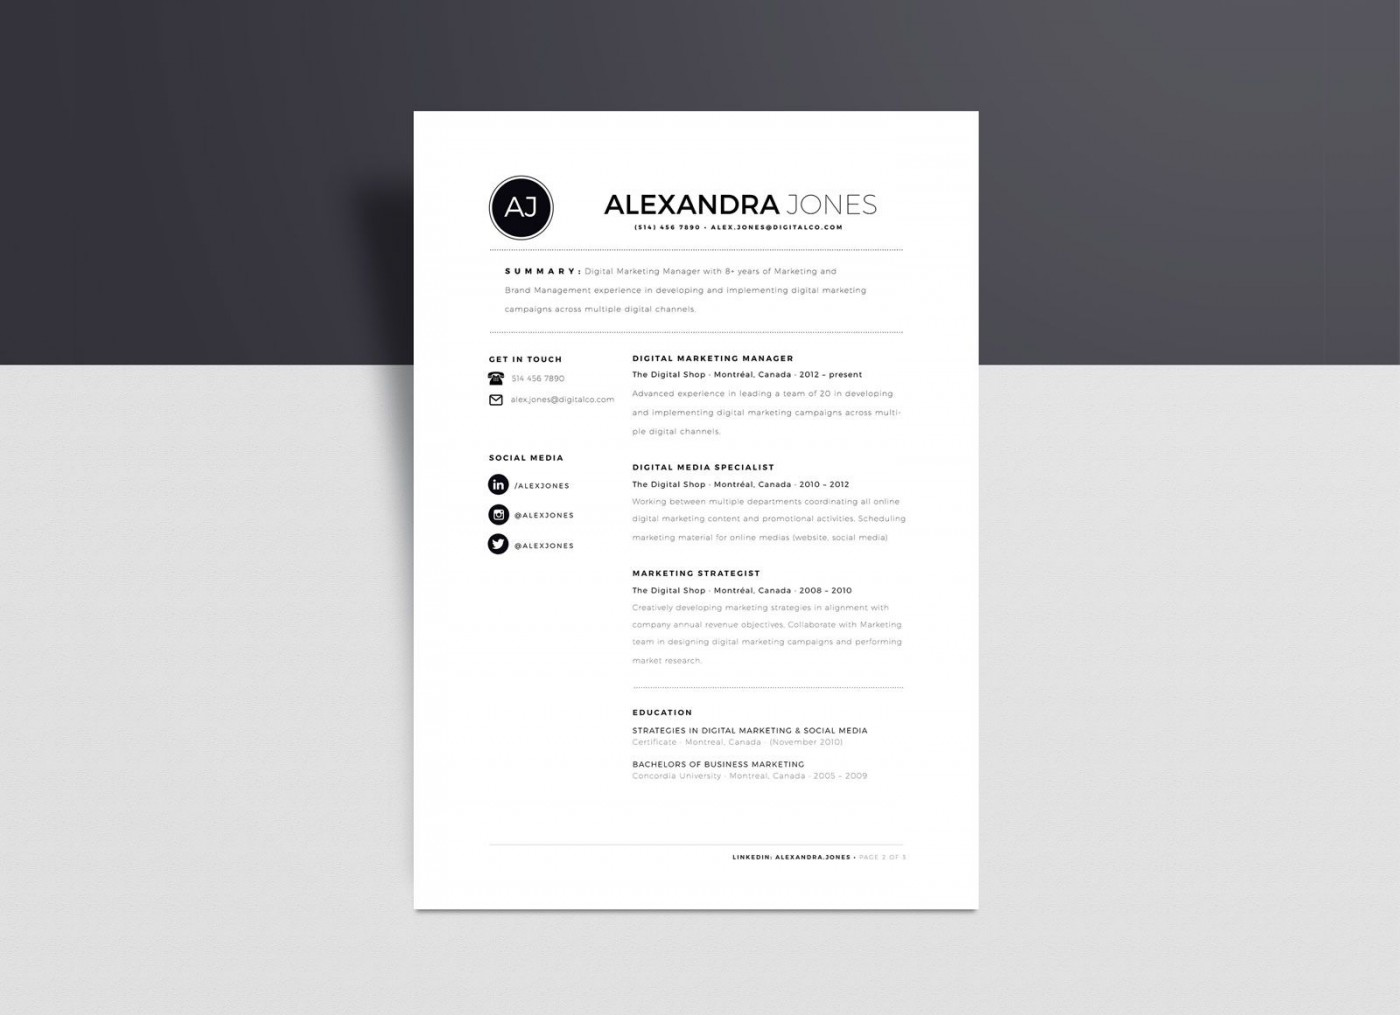 002 Frightening Resume Template Word Free High Definition  Download 2020 Doc1400